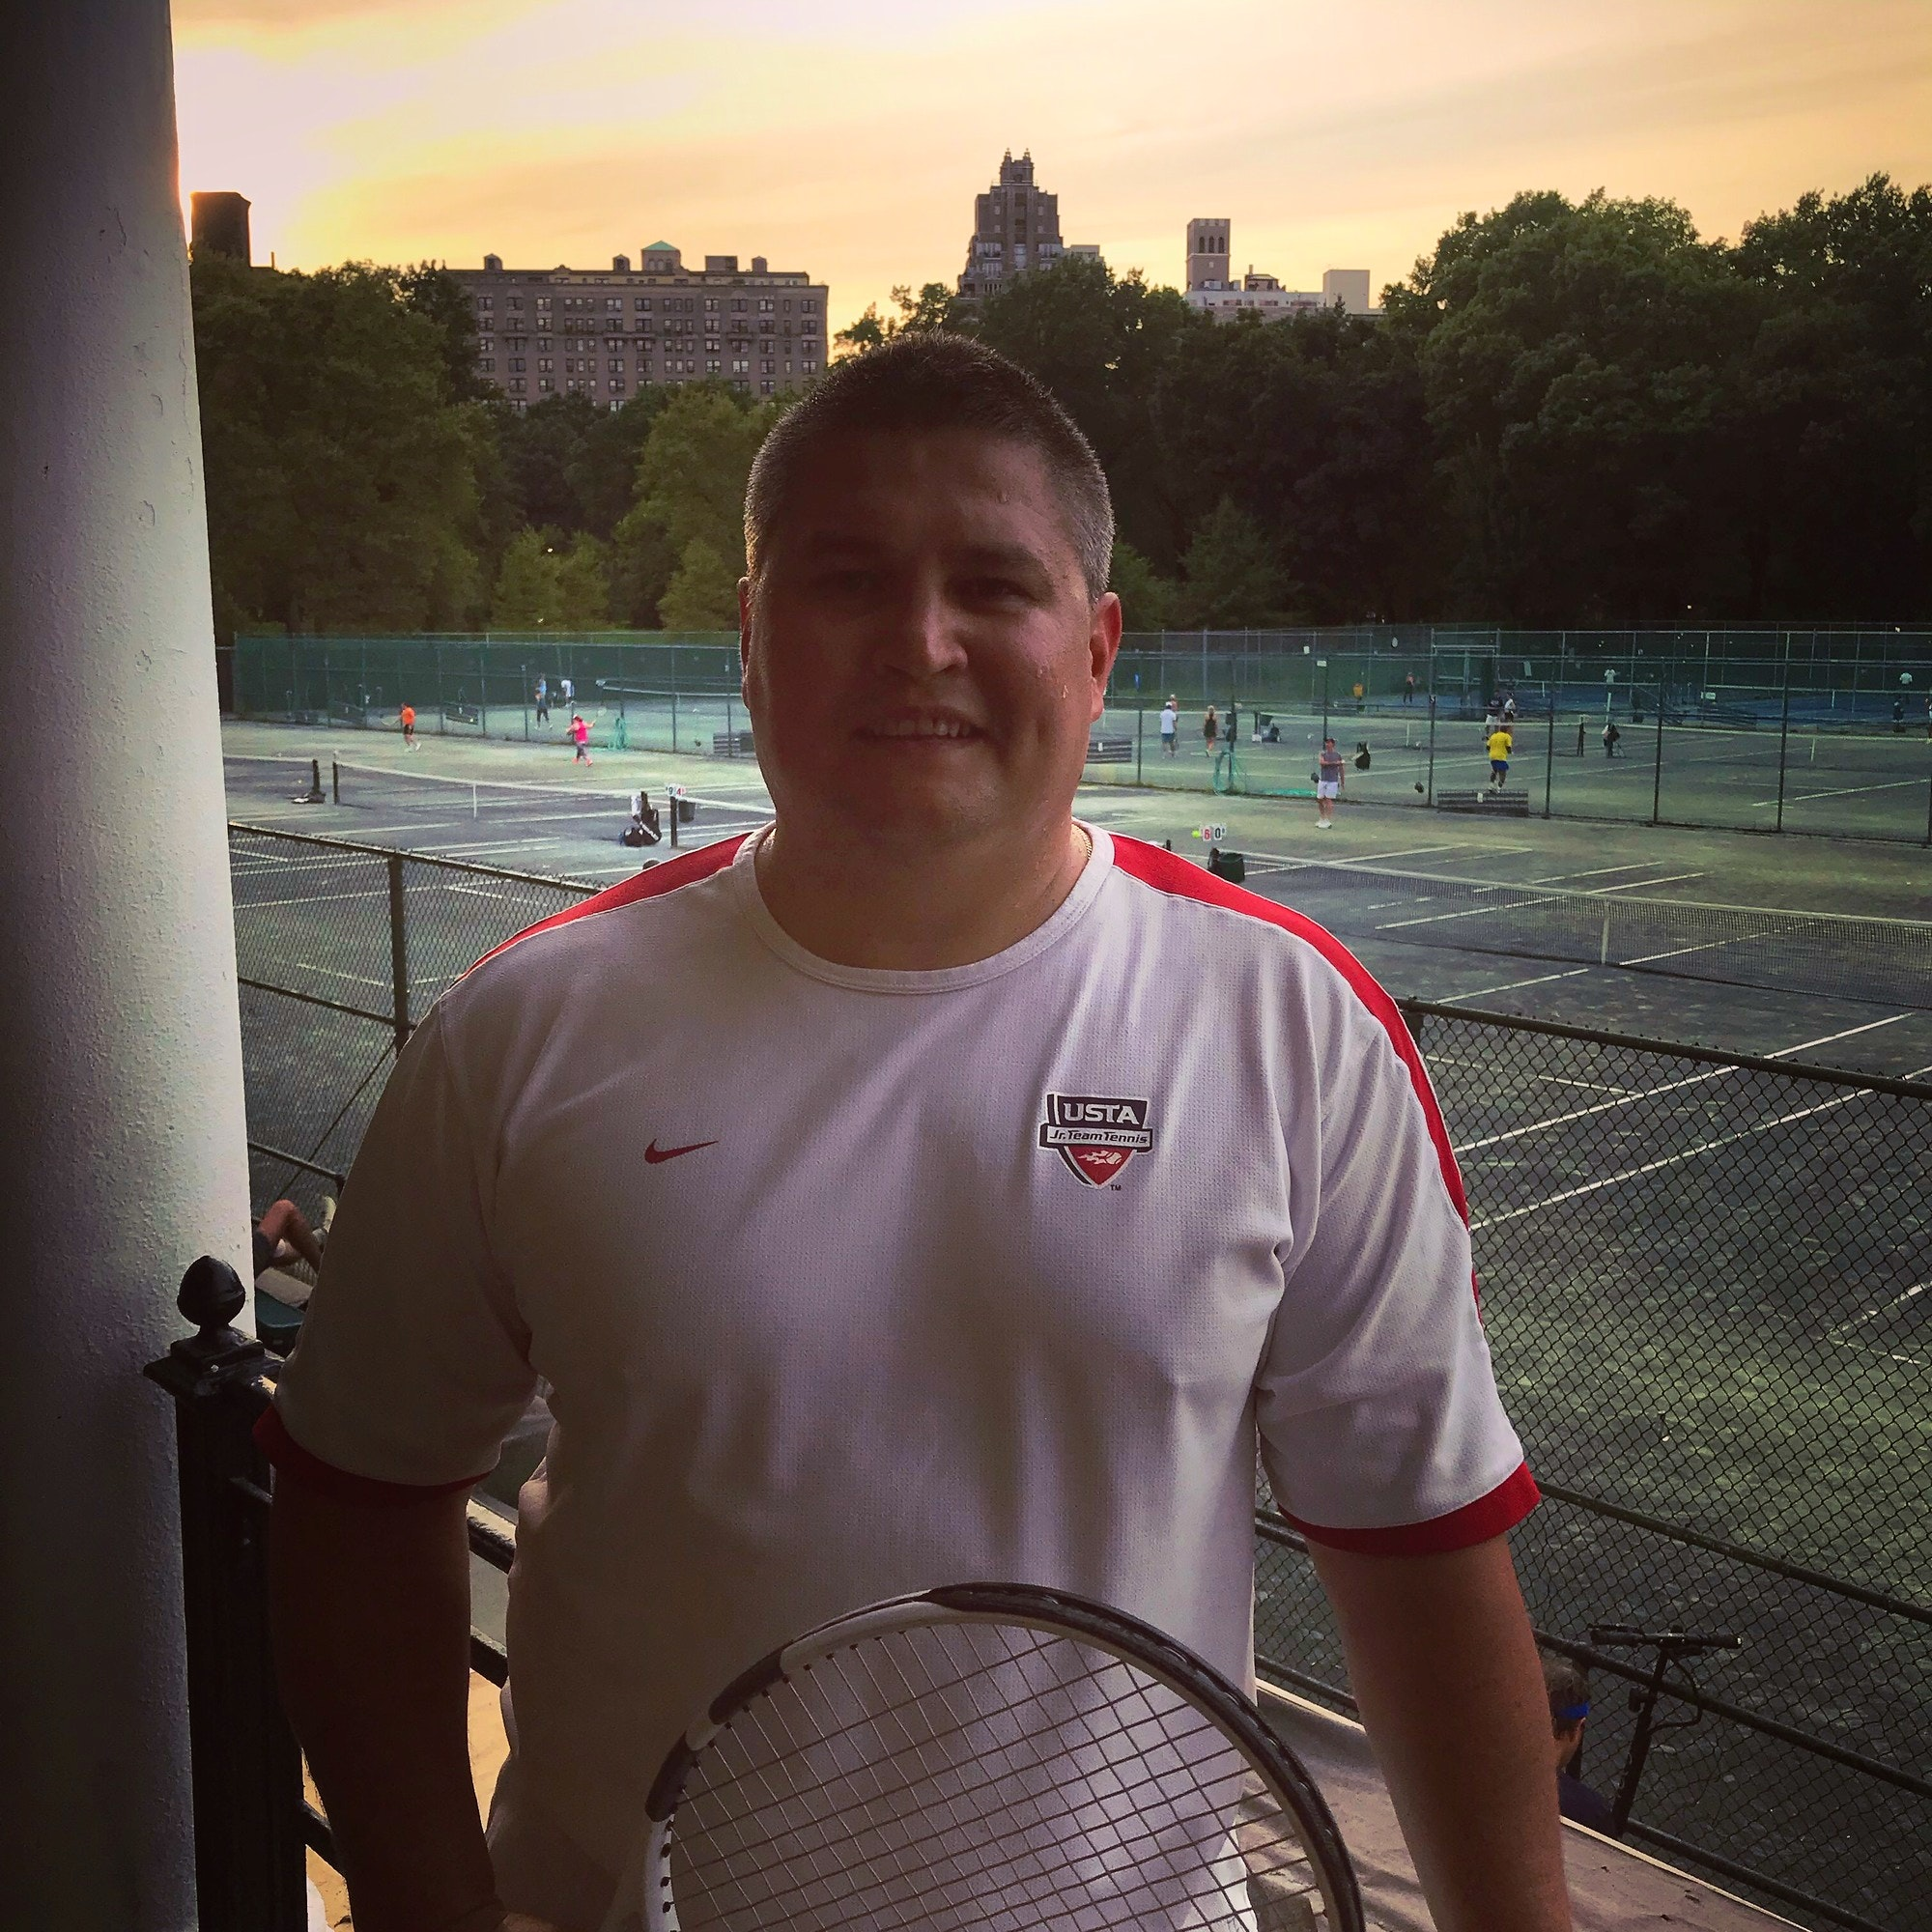 Alexander P. teaches tennis lessons in Brooklyn, NY